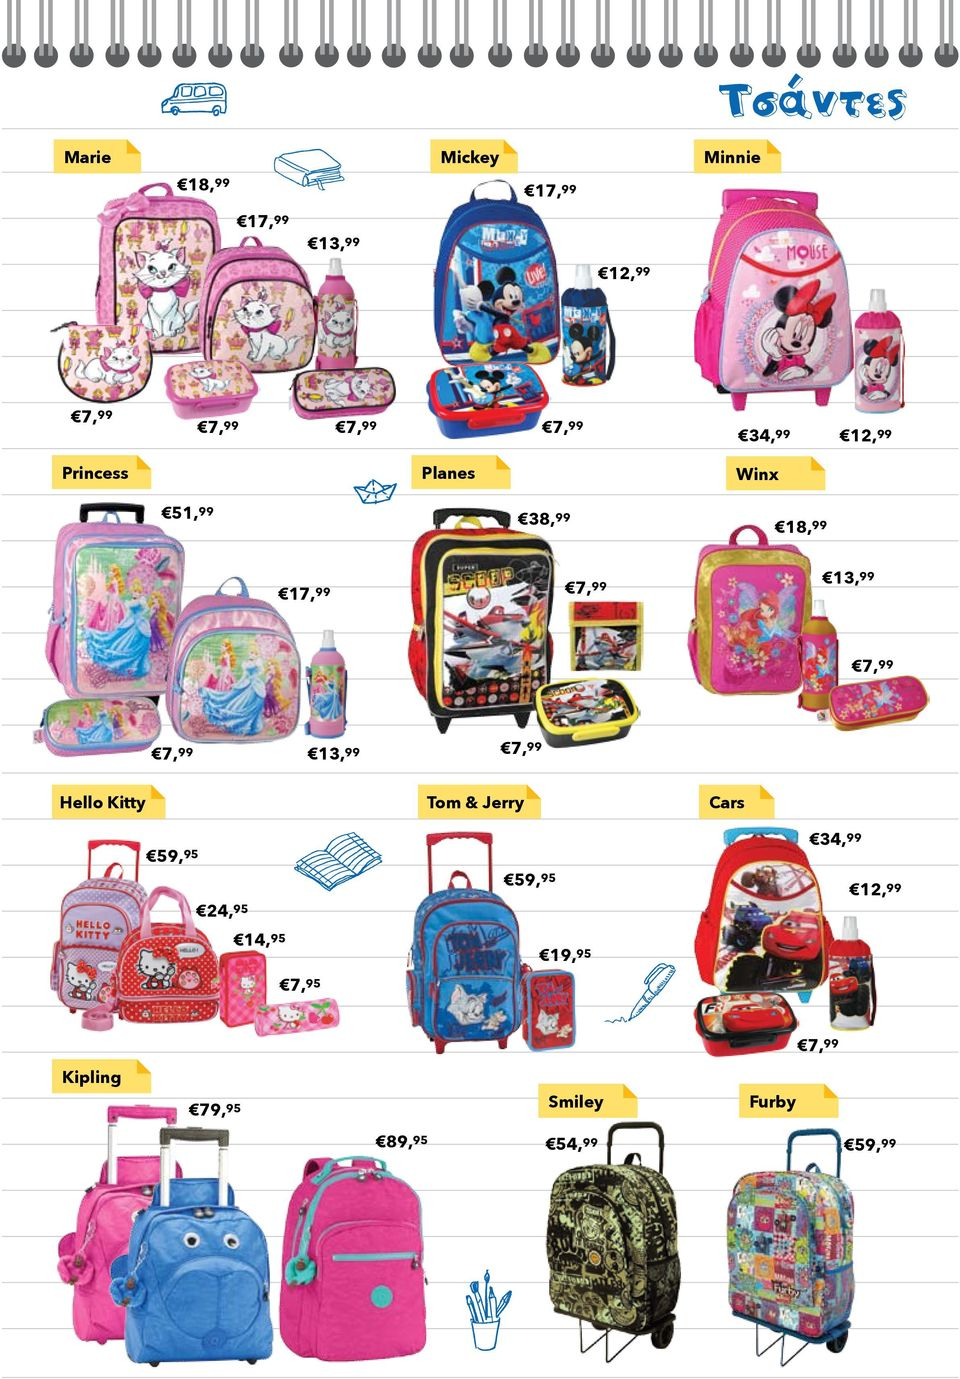 13, 99 Hello Kitty Tom & Jerry Cars 59, 95 24, 95 14, 95 7, 95